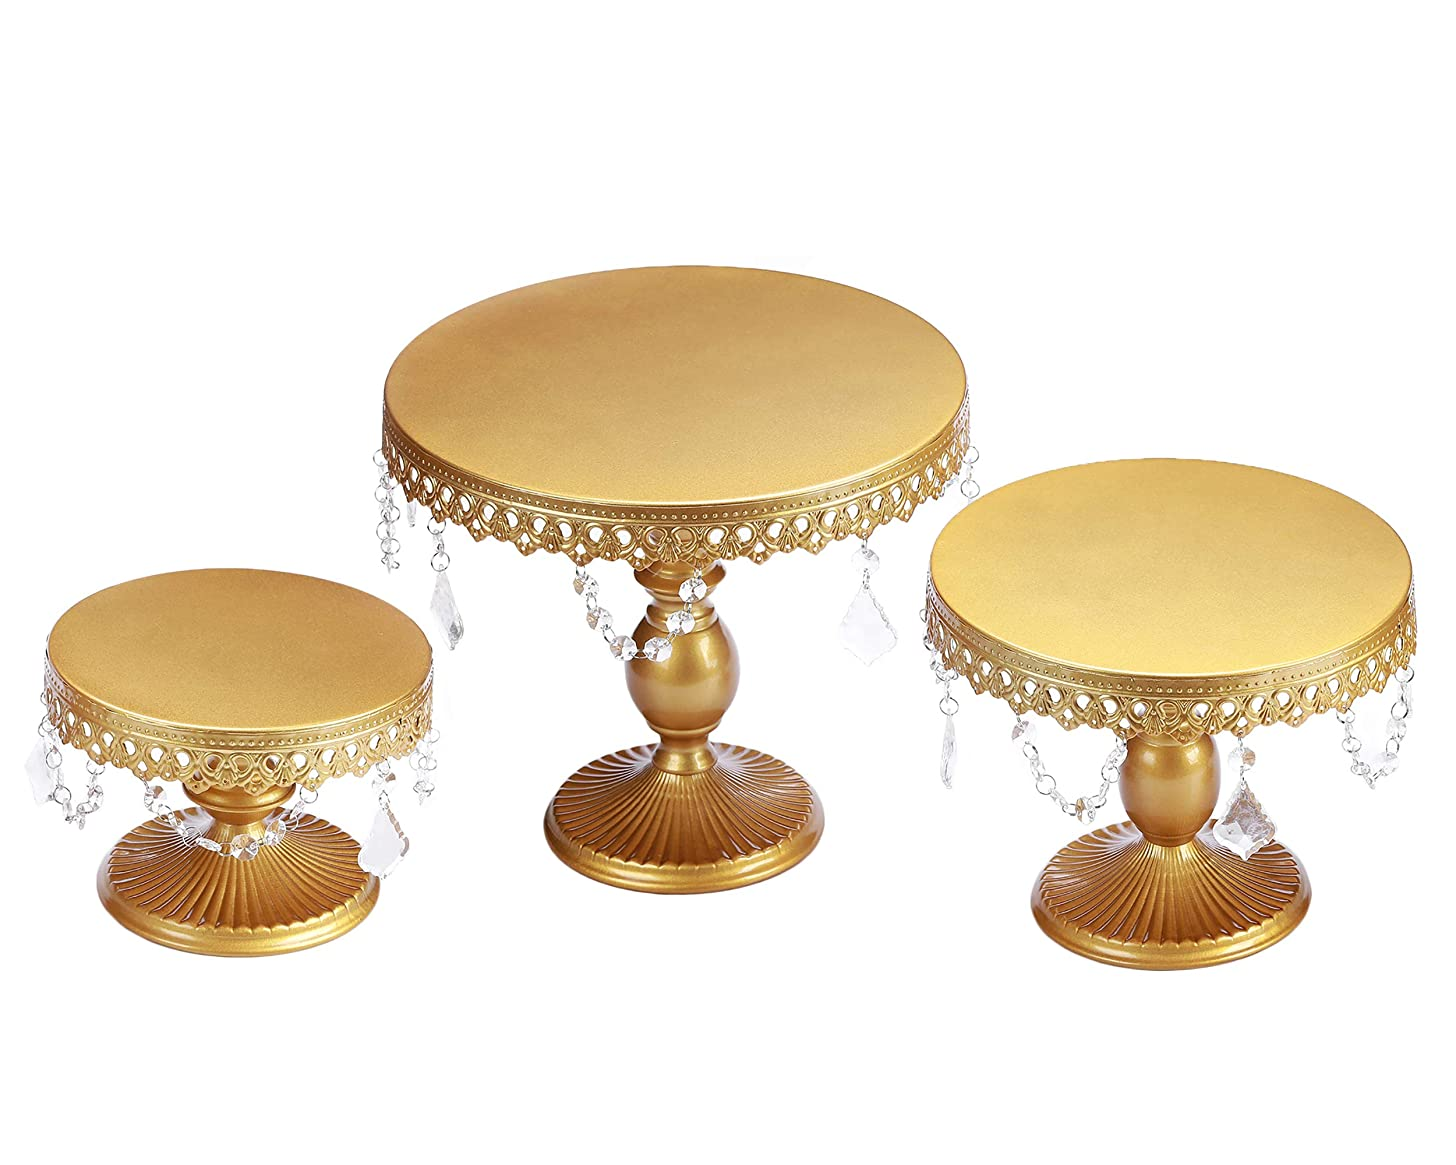 VILAVITA 3-Set Cake Stands Round Cupcake Stands Dessert Display Stand with Pendants and Beads, Gold